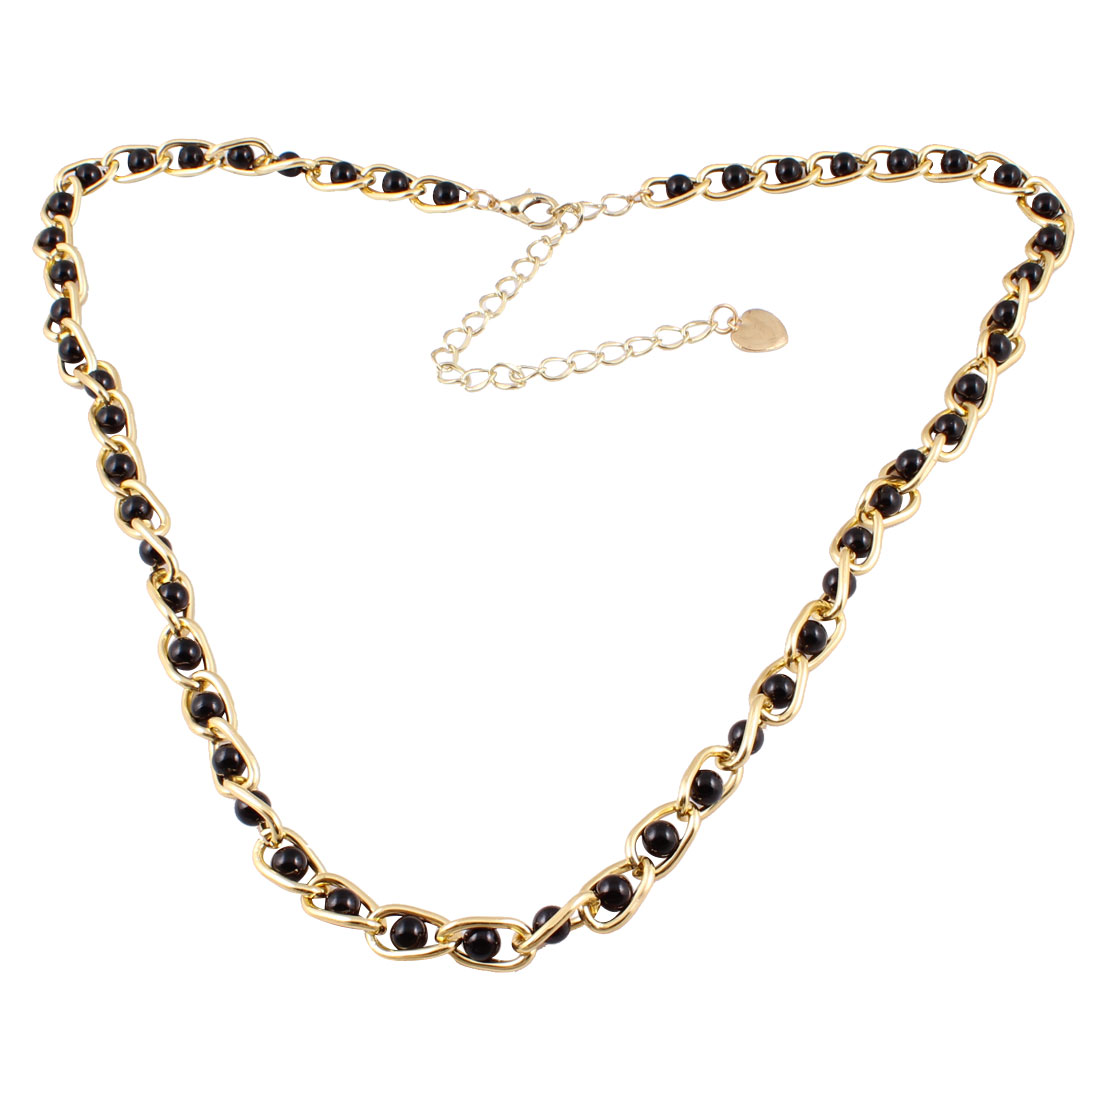 Ladies Gold Tone Metallic Dangling Heart Black Imitation Pearl Decor Curbchain Waist Belly Chain